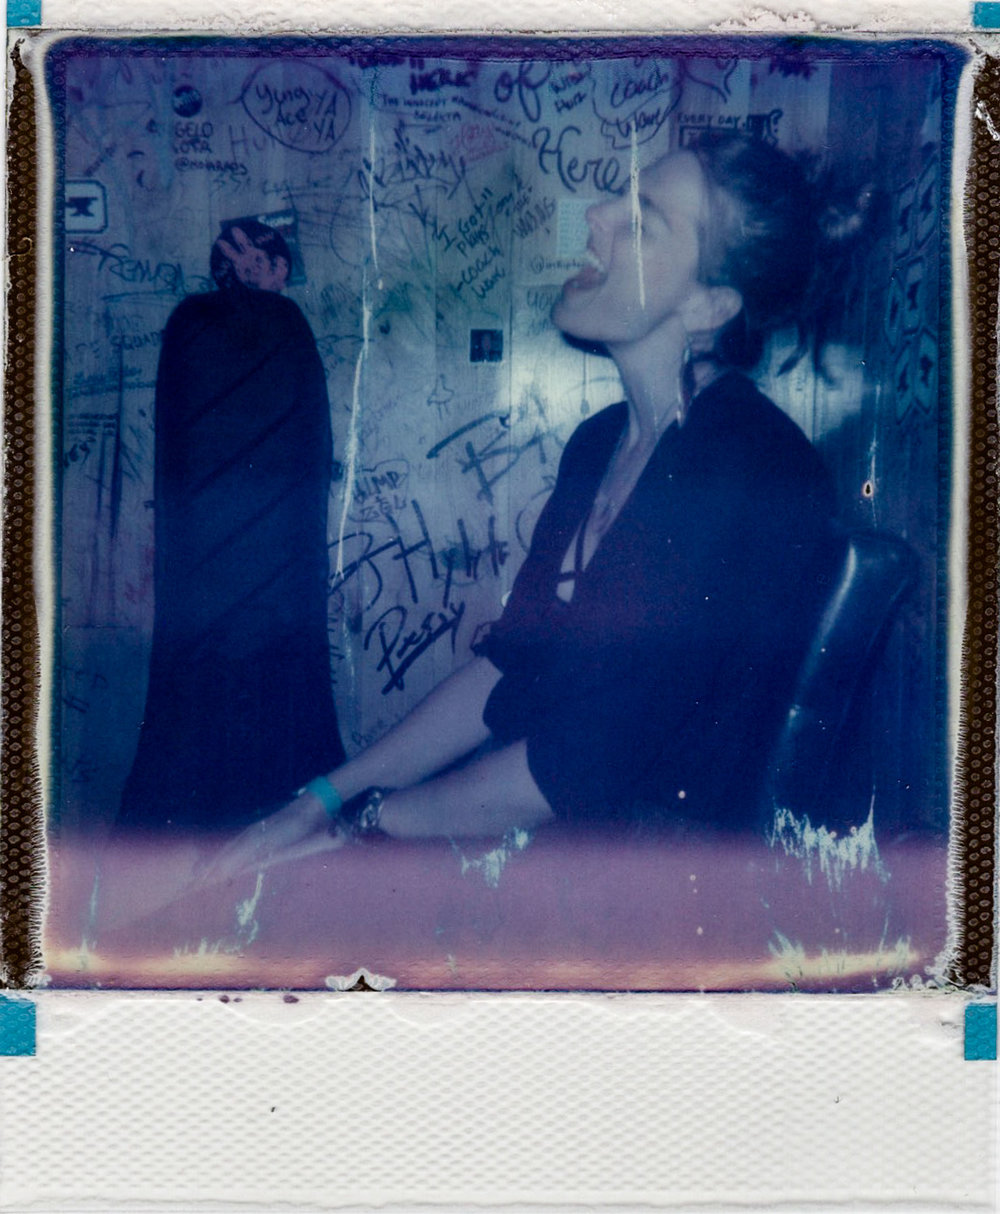 mary_caroline_russell_music_photographer_altanta_nashville_muddy_magnolias_new_york_webster_hall_polaroid_2